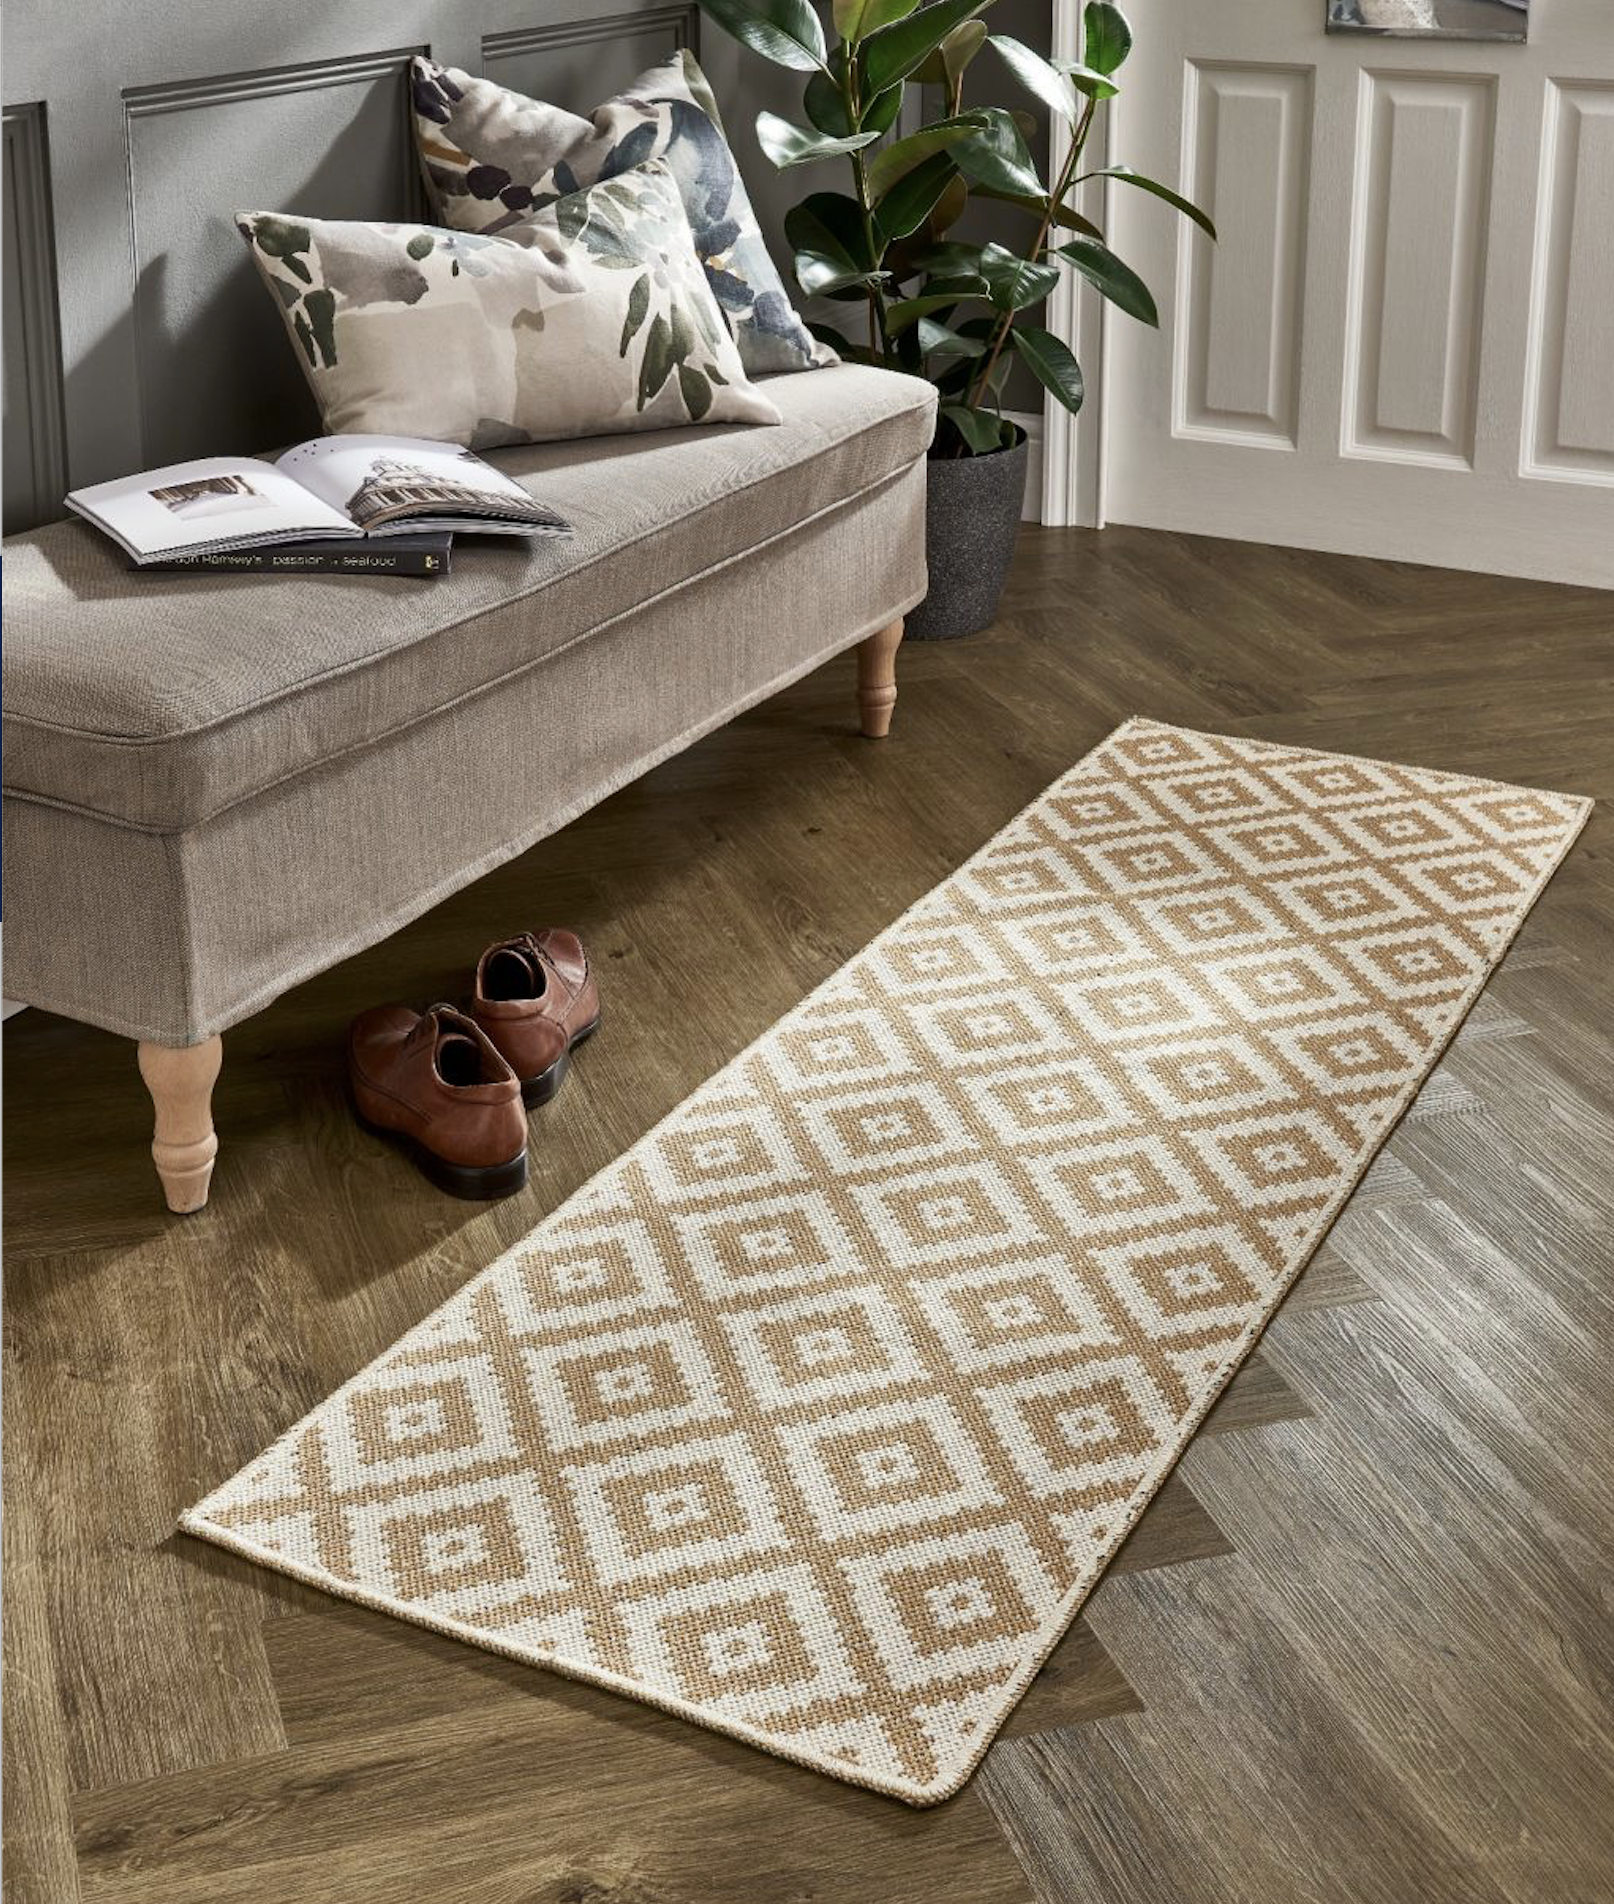 Recycled T shirt rug in gold Tuscan Sun colourway